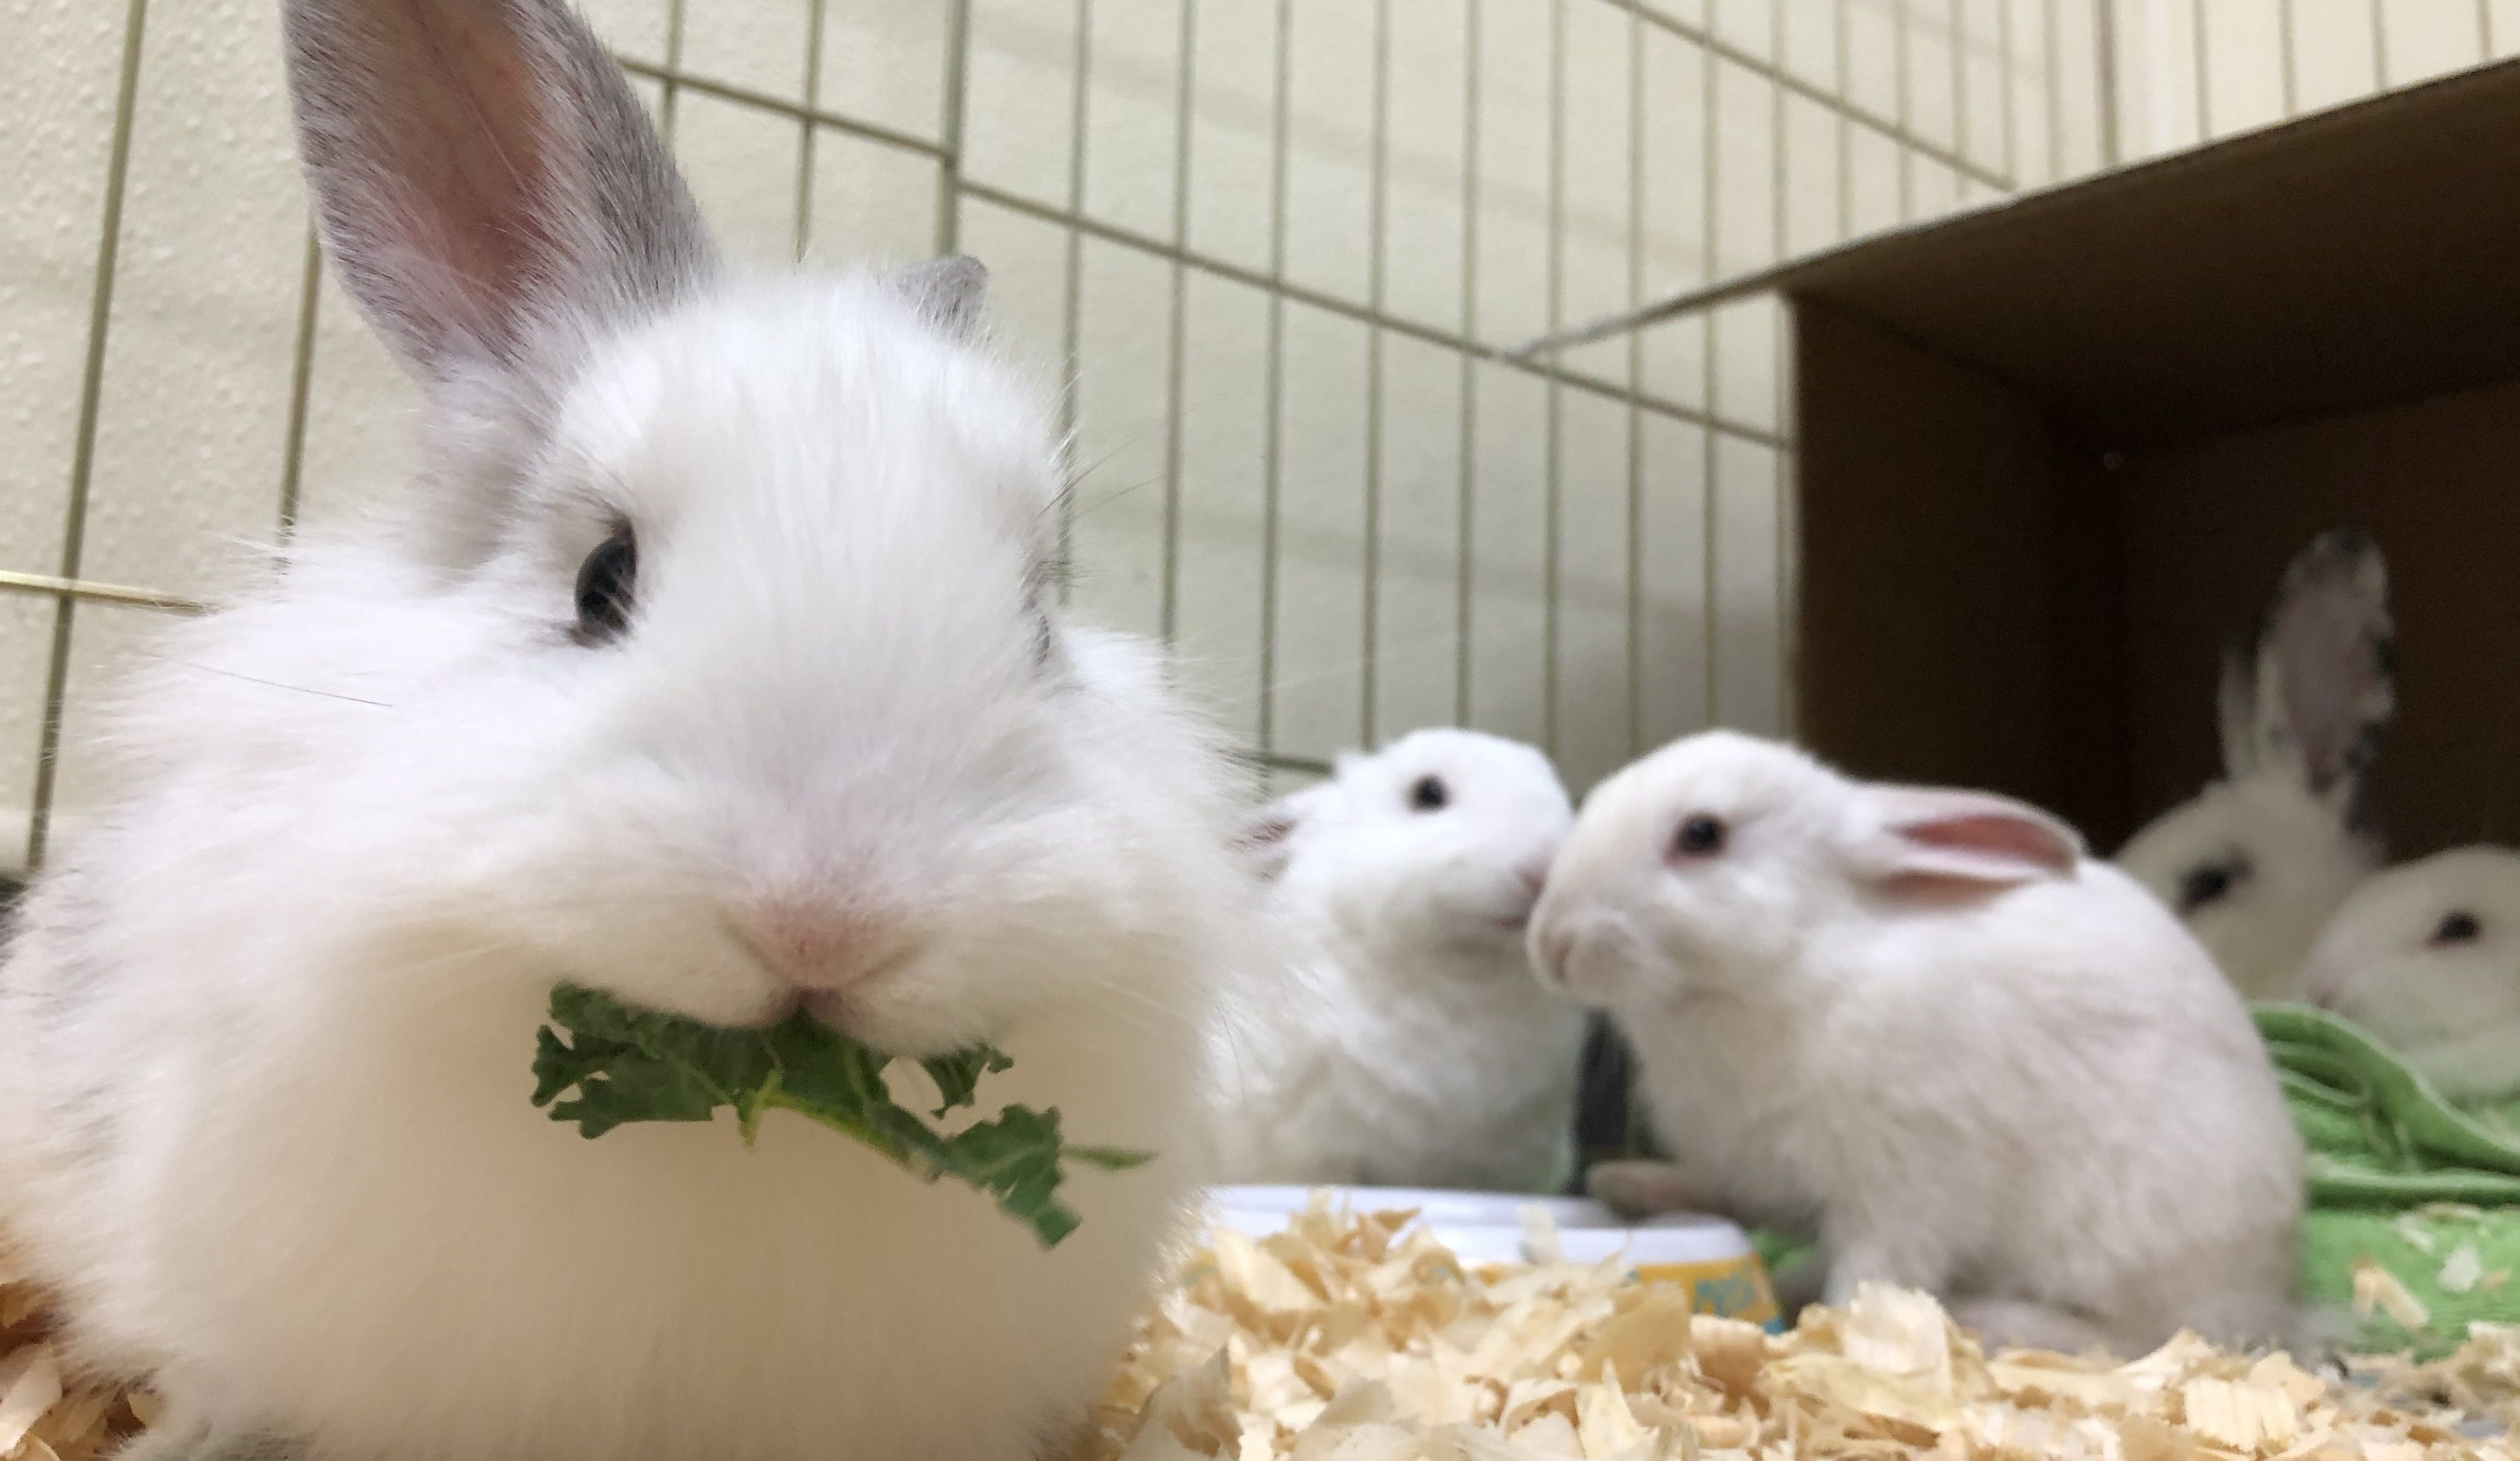 Bunnies For Sale Near Me >> Small Pets Thinking Outside The Box Heritage Humane